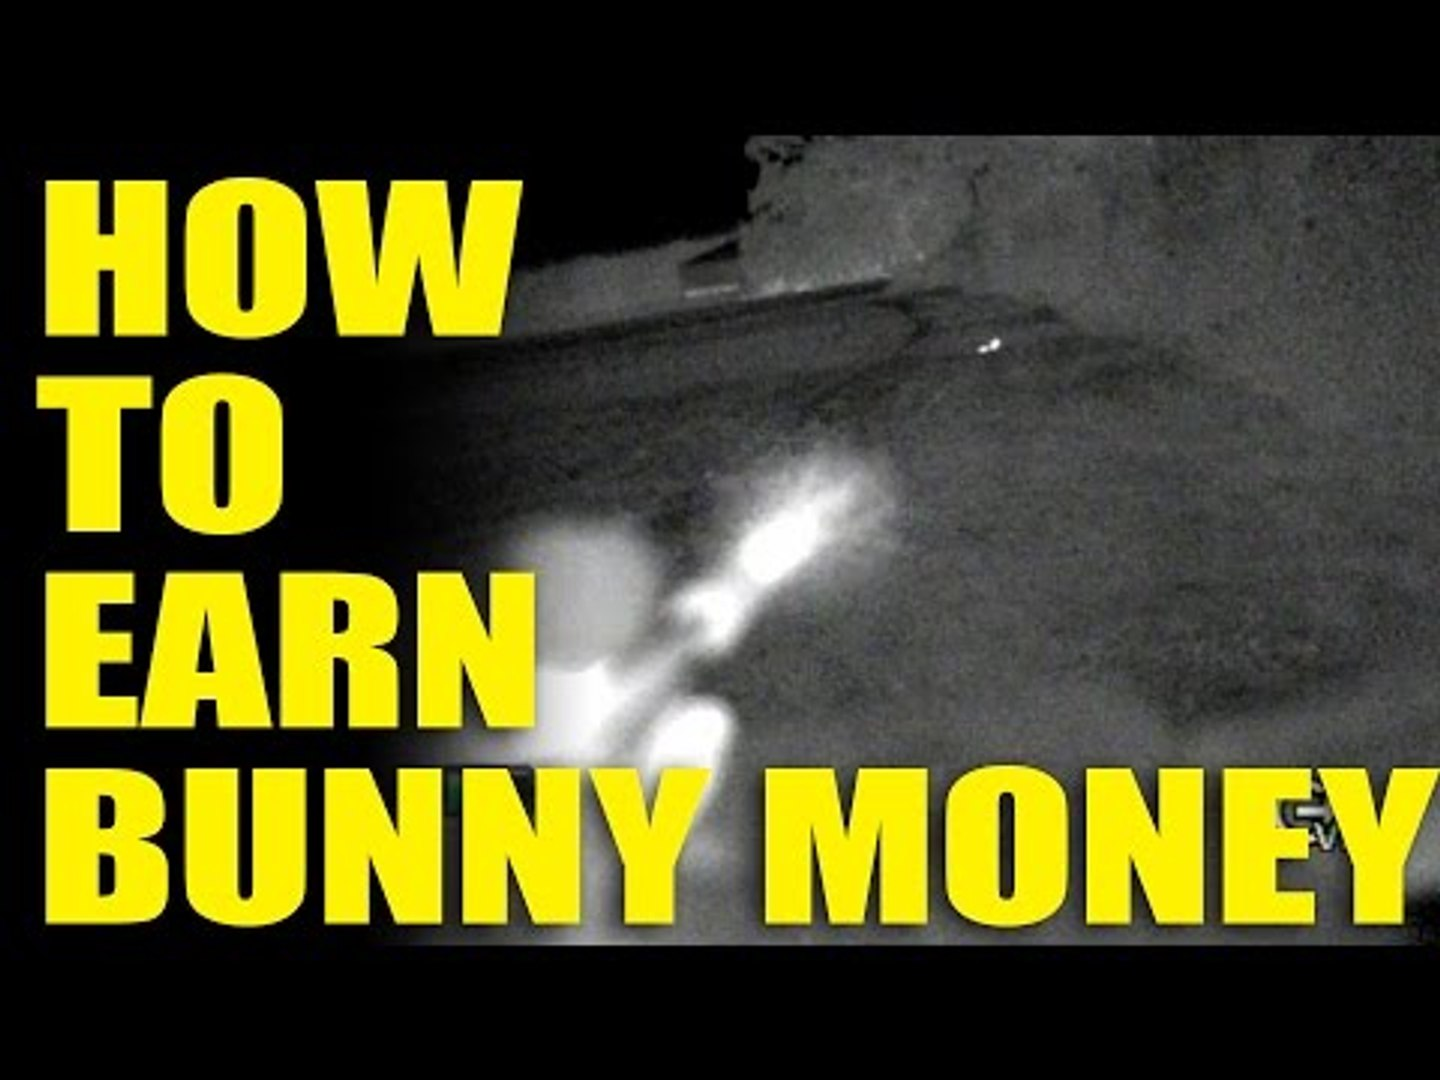 How to Earn 'Bunny Money'